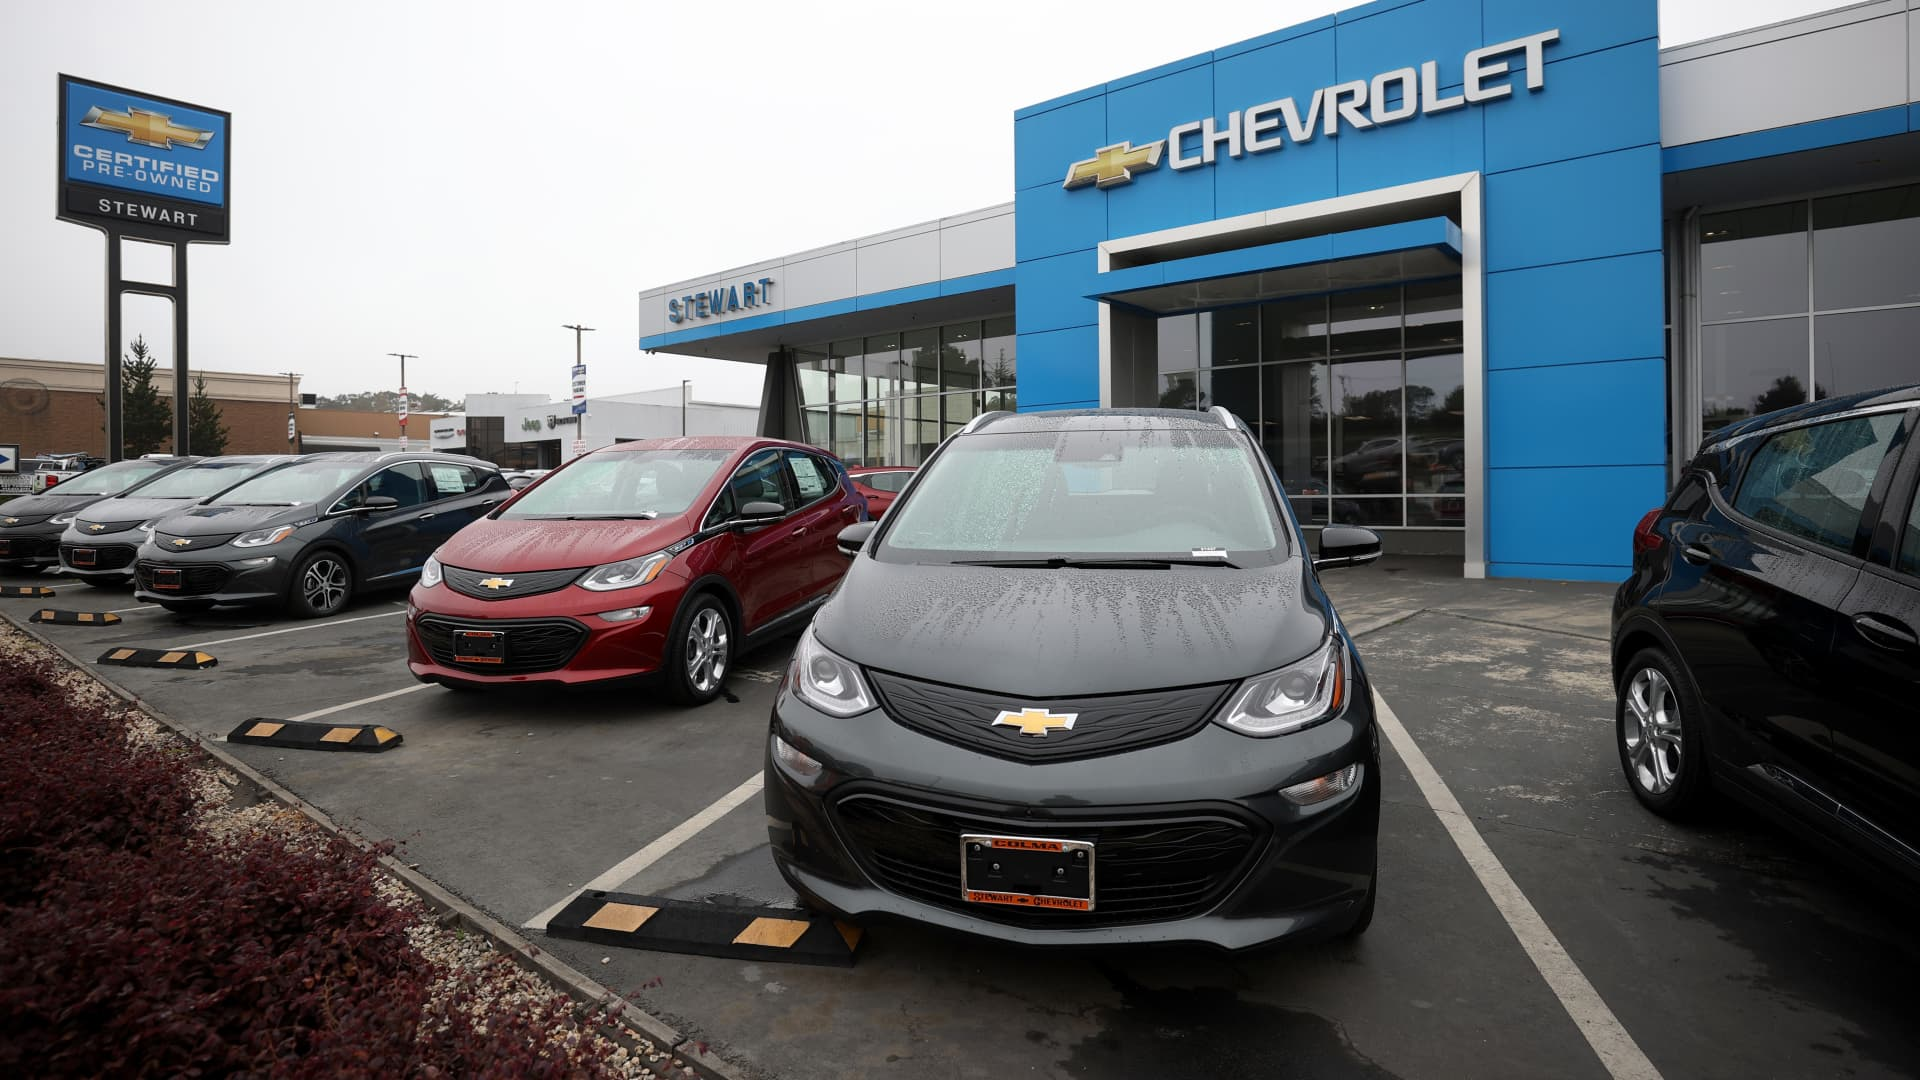 Brand new Chevrolet cars are displayed on the sales lot at Stewart Chevrolet on May 14, 2021 in Colma, California.